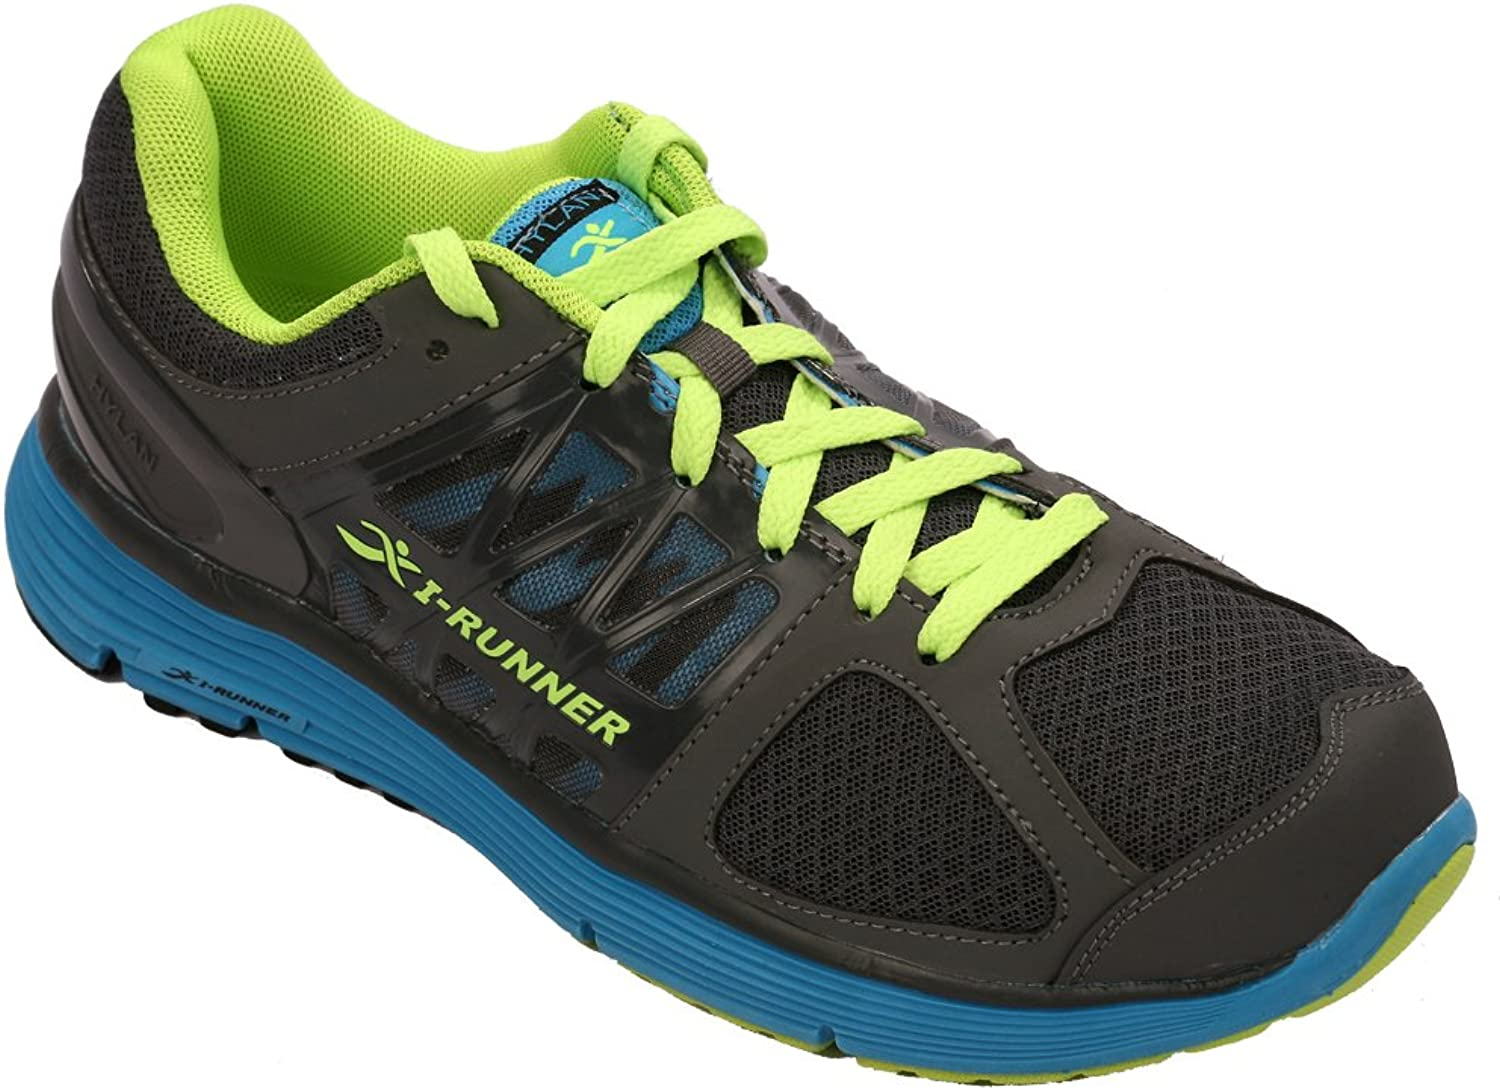 HyLan iRunner Ross Men's Therapeutic Athletic Extra Depth shoes  Grey bluee Green 11.5 X-Wide (4E) Lace